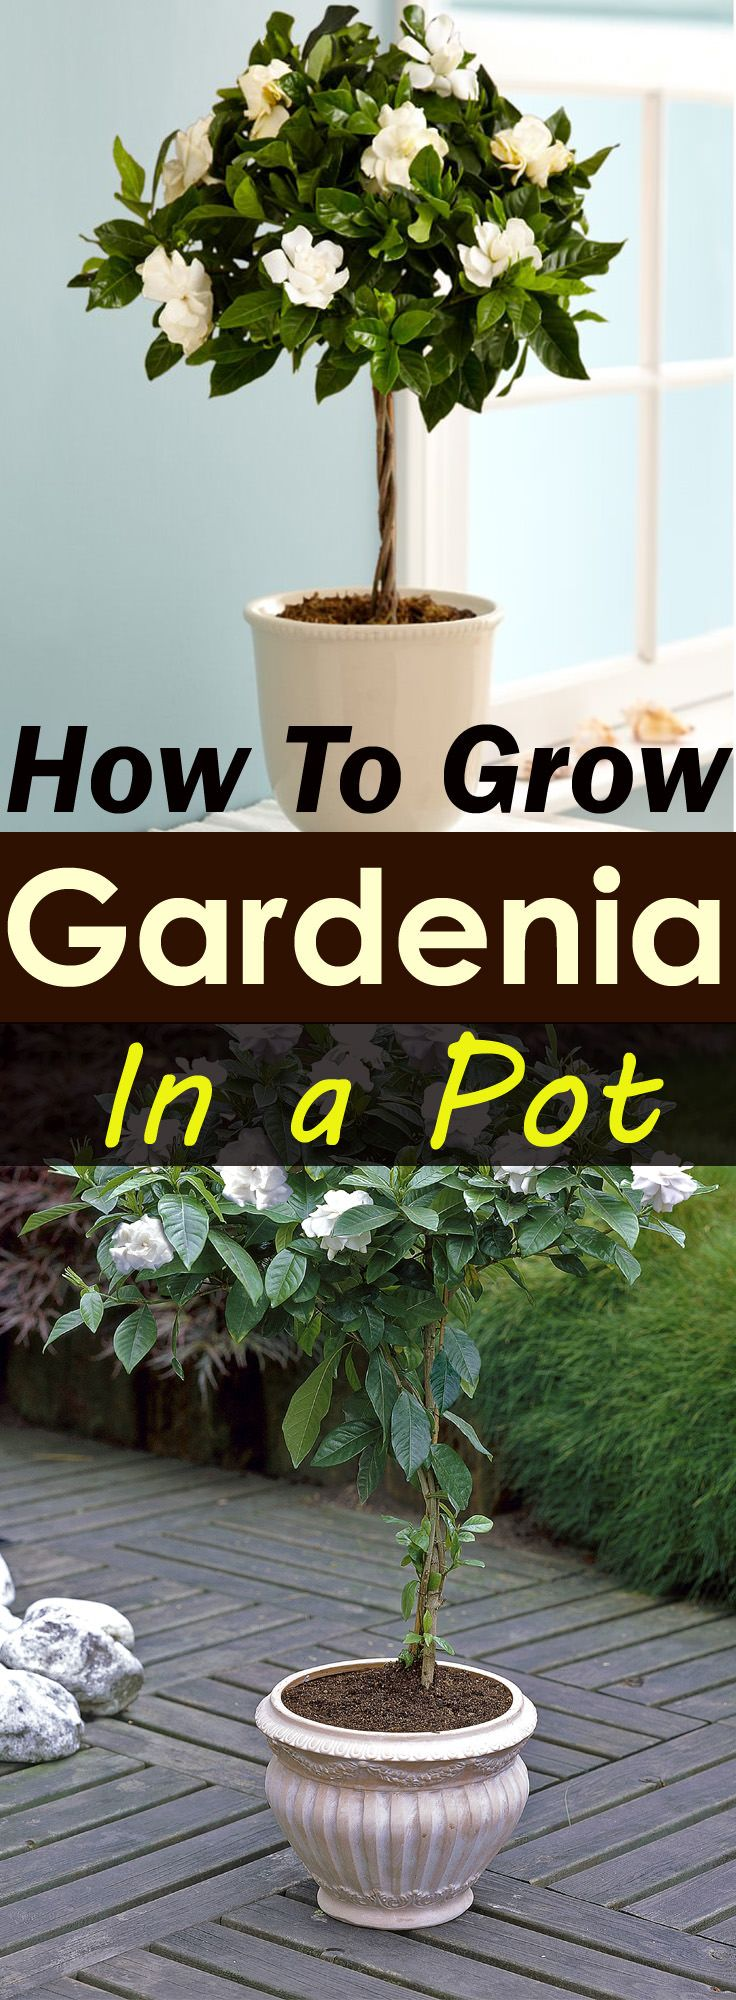 Growing gardenias in pots require some care and attention but they worth that as gardenias are famous for their heady fragrance and beautiful appearance.